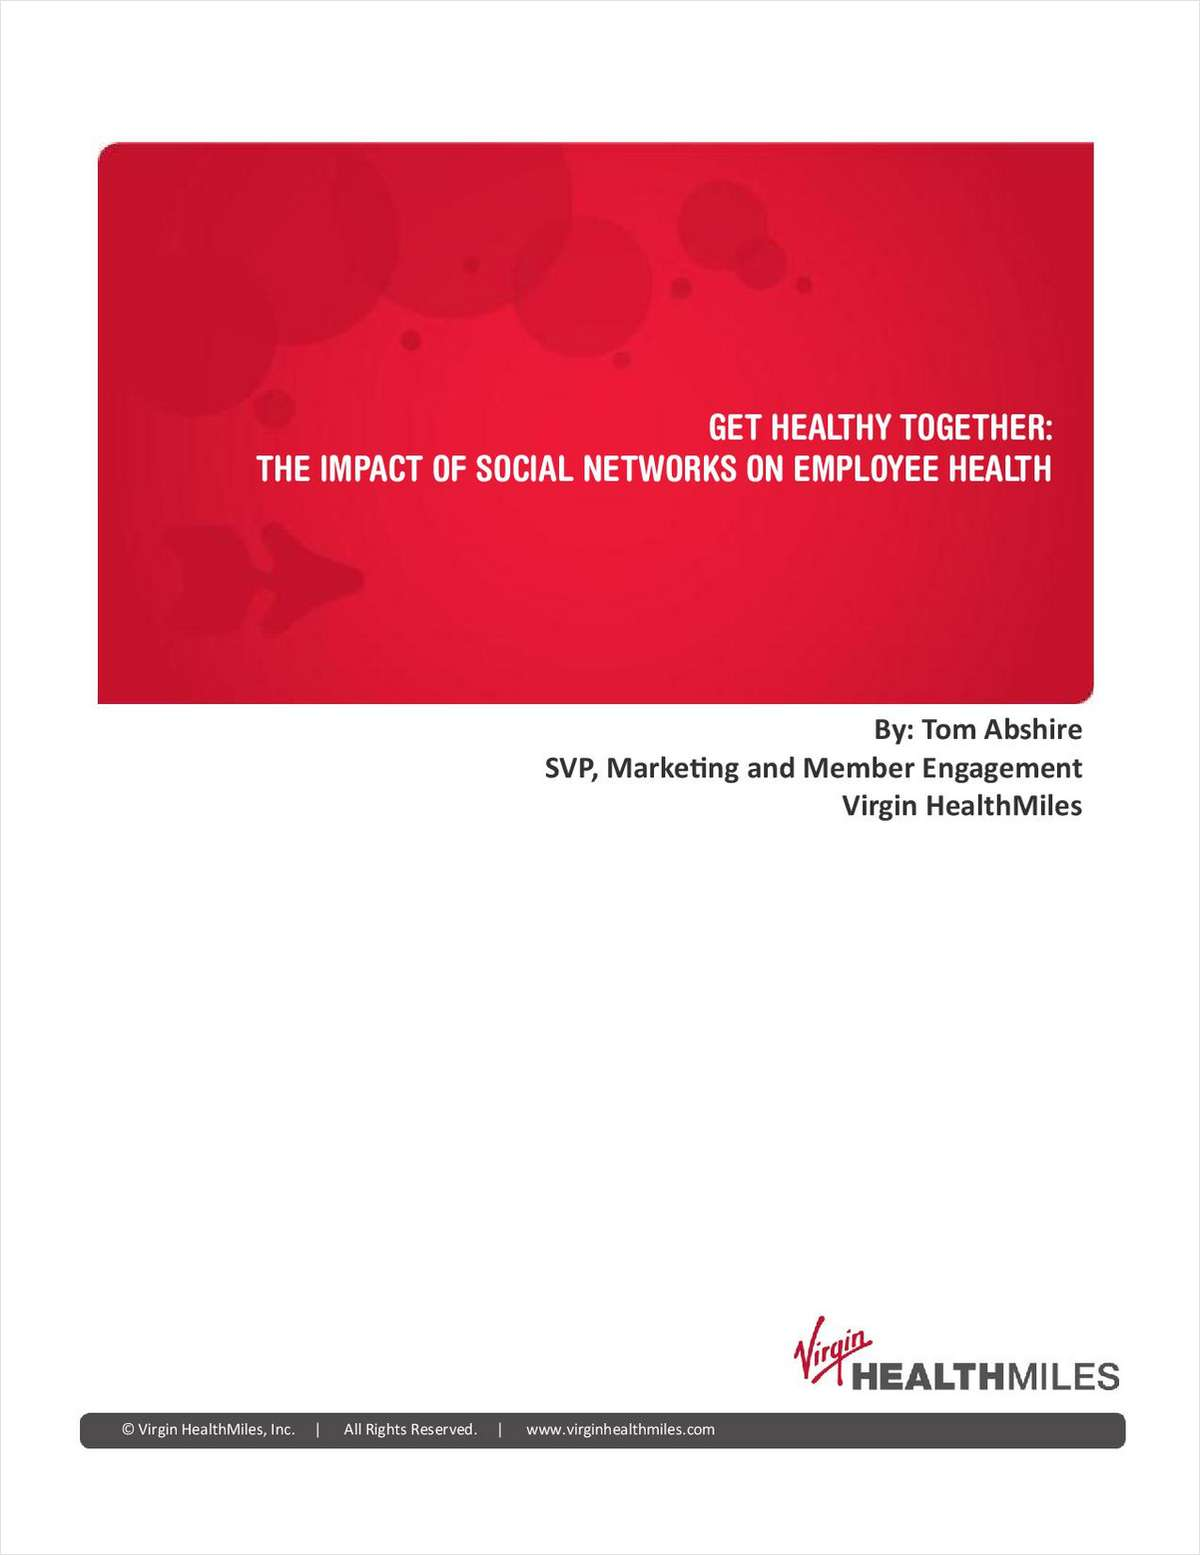 Get Healthy - Together: The Impact of Social Networks on Employee Health